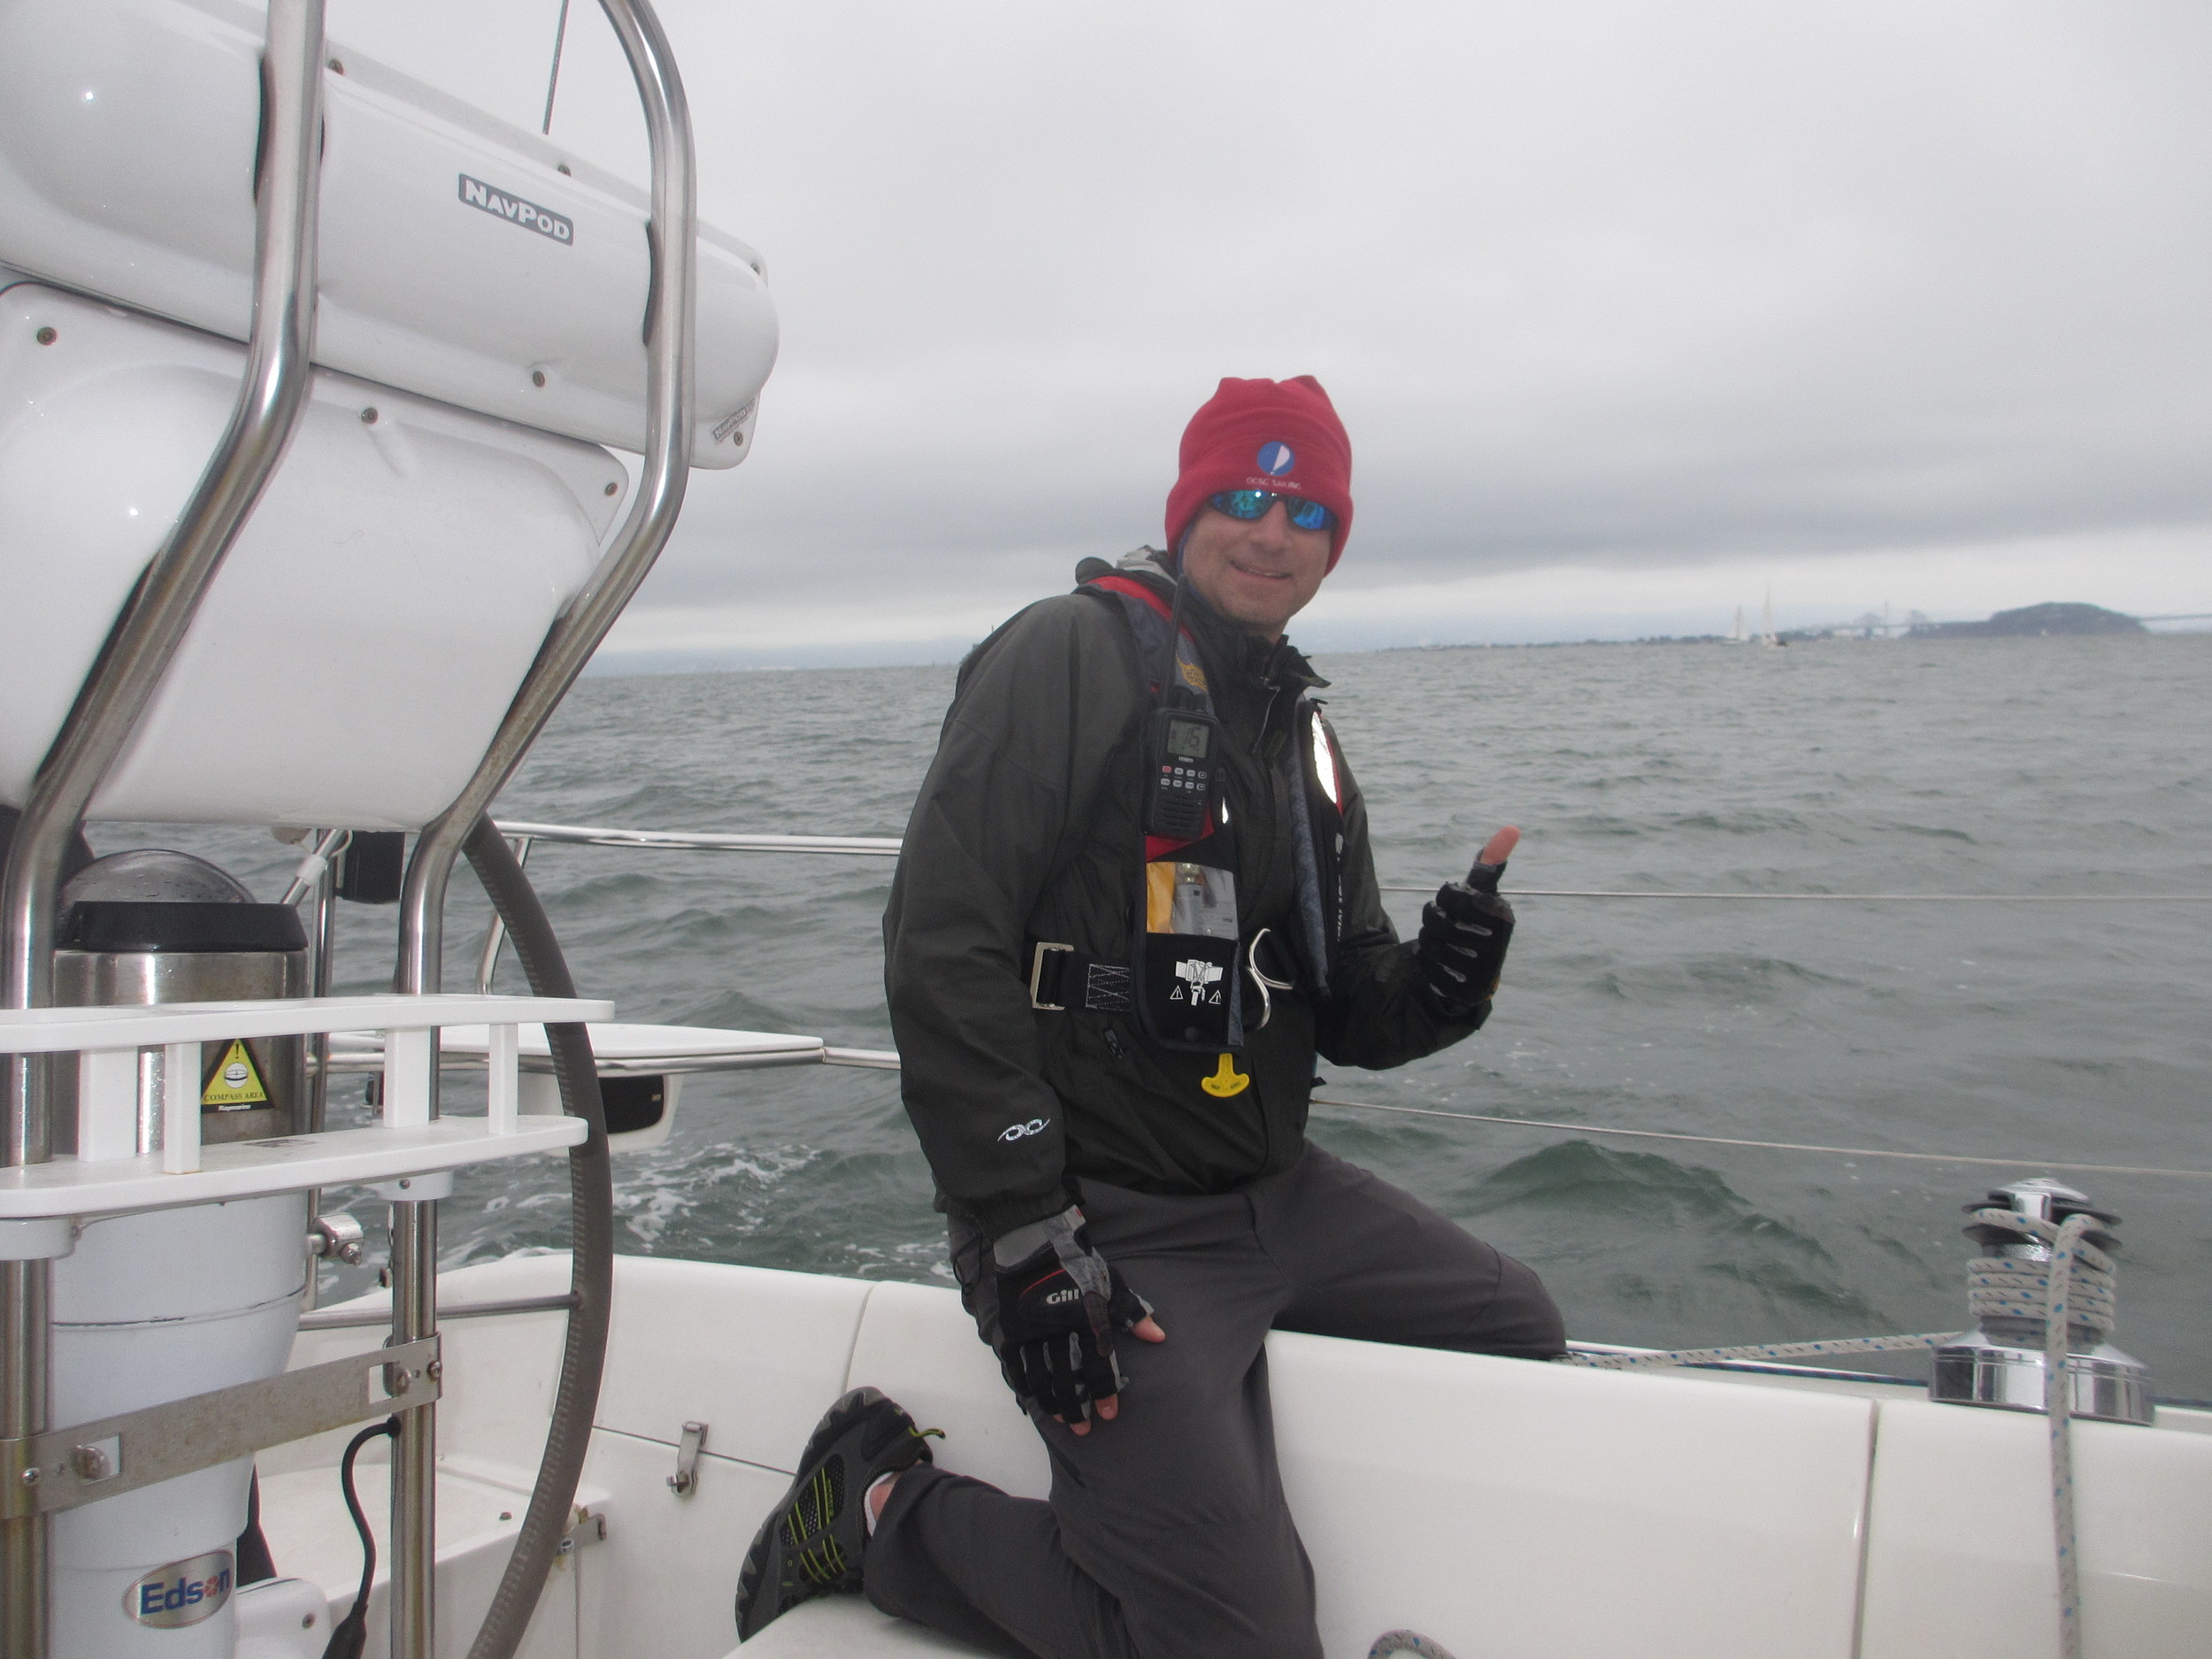 This is me - sailing on the San Francisco Bay!